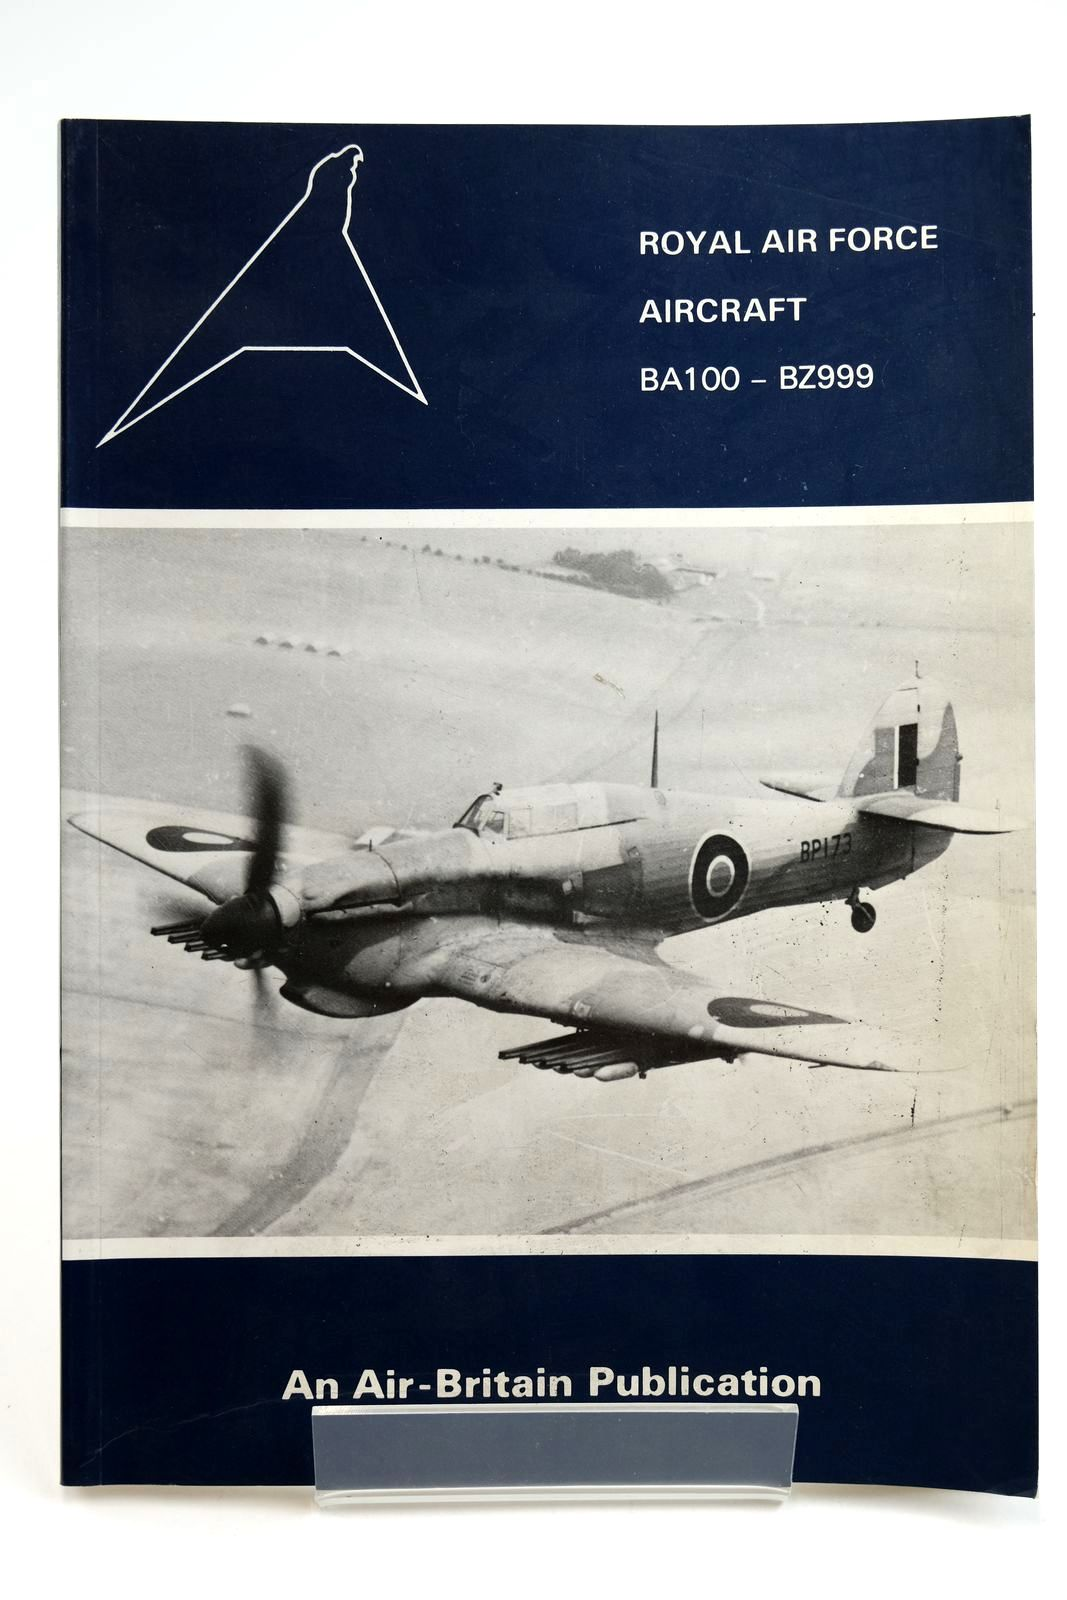 Photo of ROYAL AIR FORCE AIRCRAFT BA100 - BZ999 written by Halley, James J. published by Air-Britain (Historians) Ltd. (STOCK CODE: 2132208)  for sale by Stella & Rose's Books